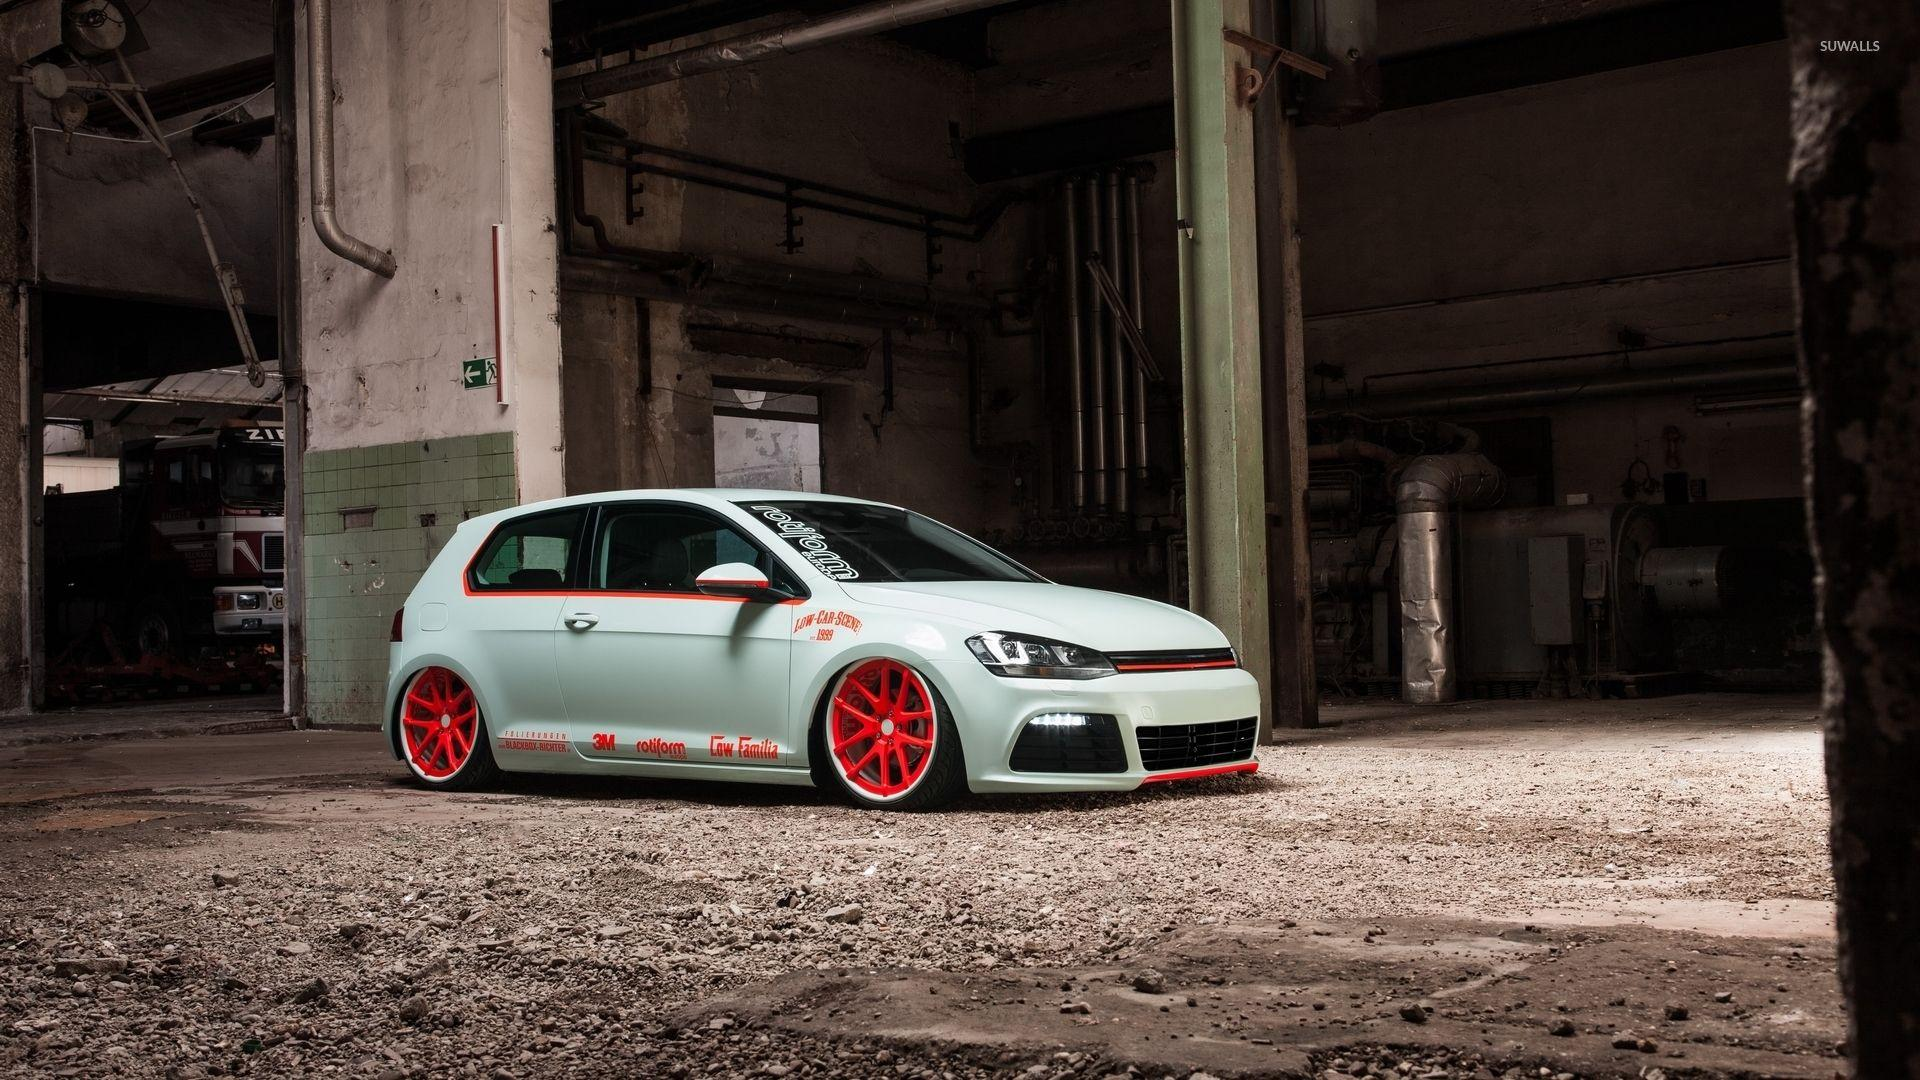 Volkswagen Golf Mk7 wallpaper - Car wallpapers - #45731